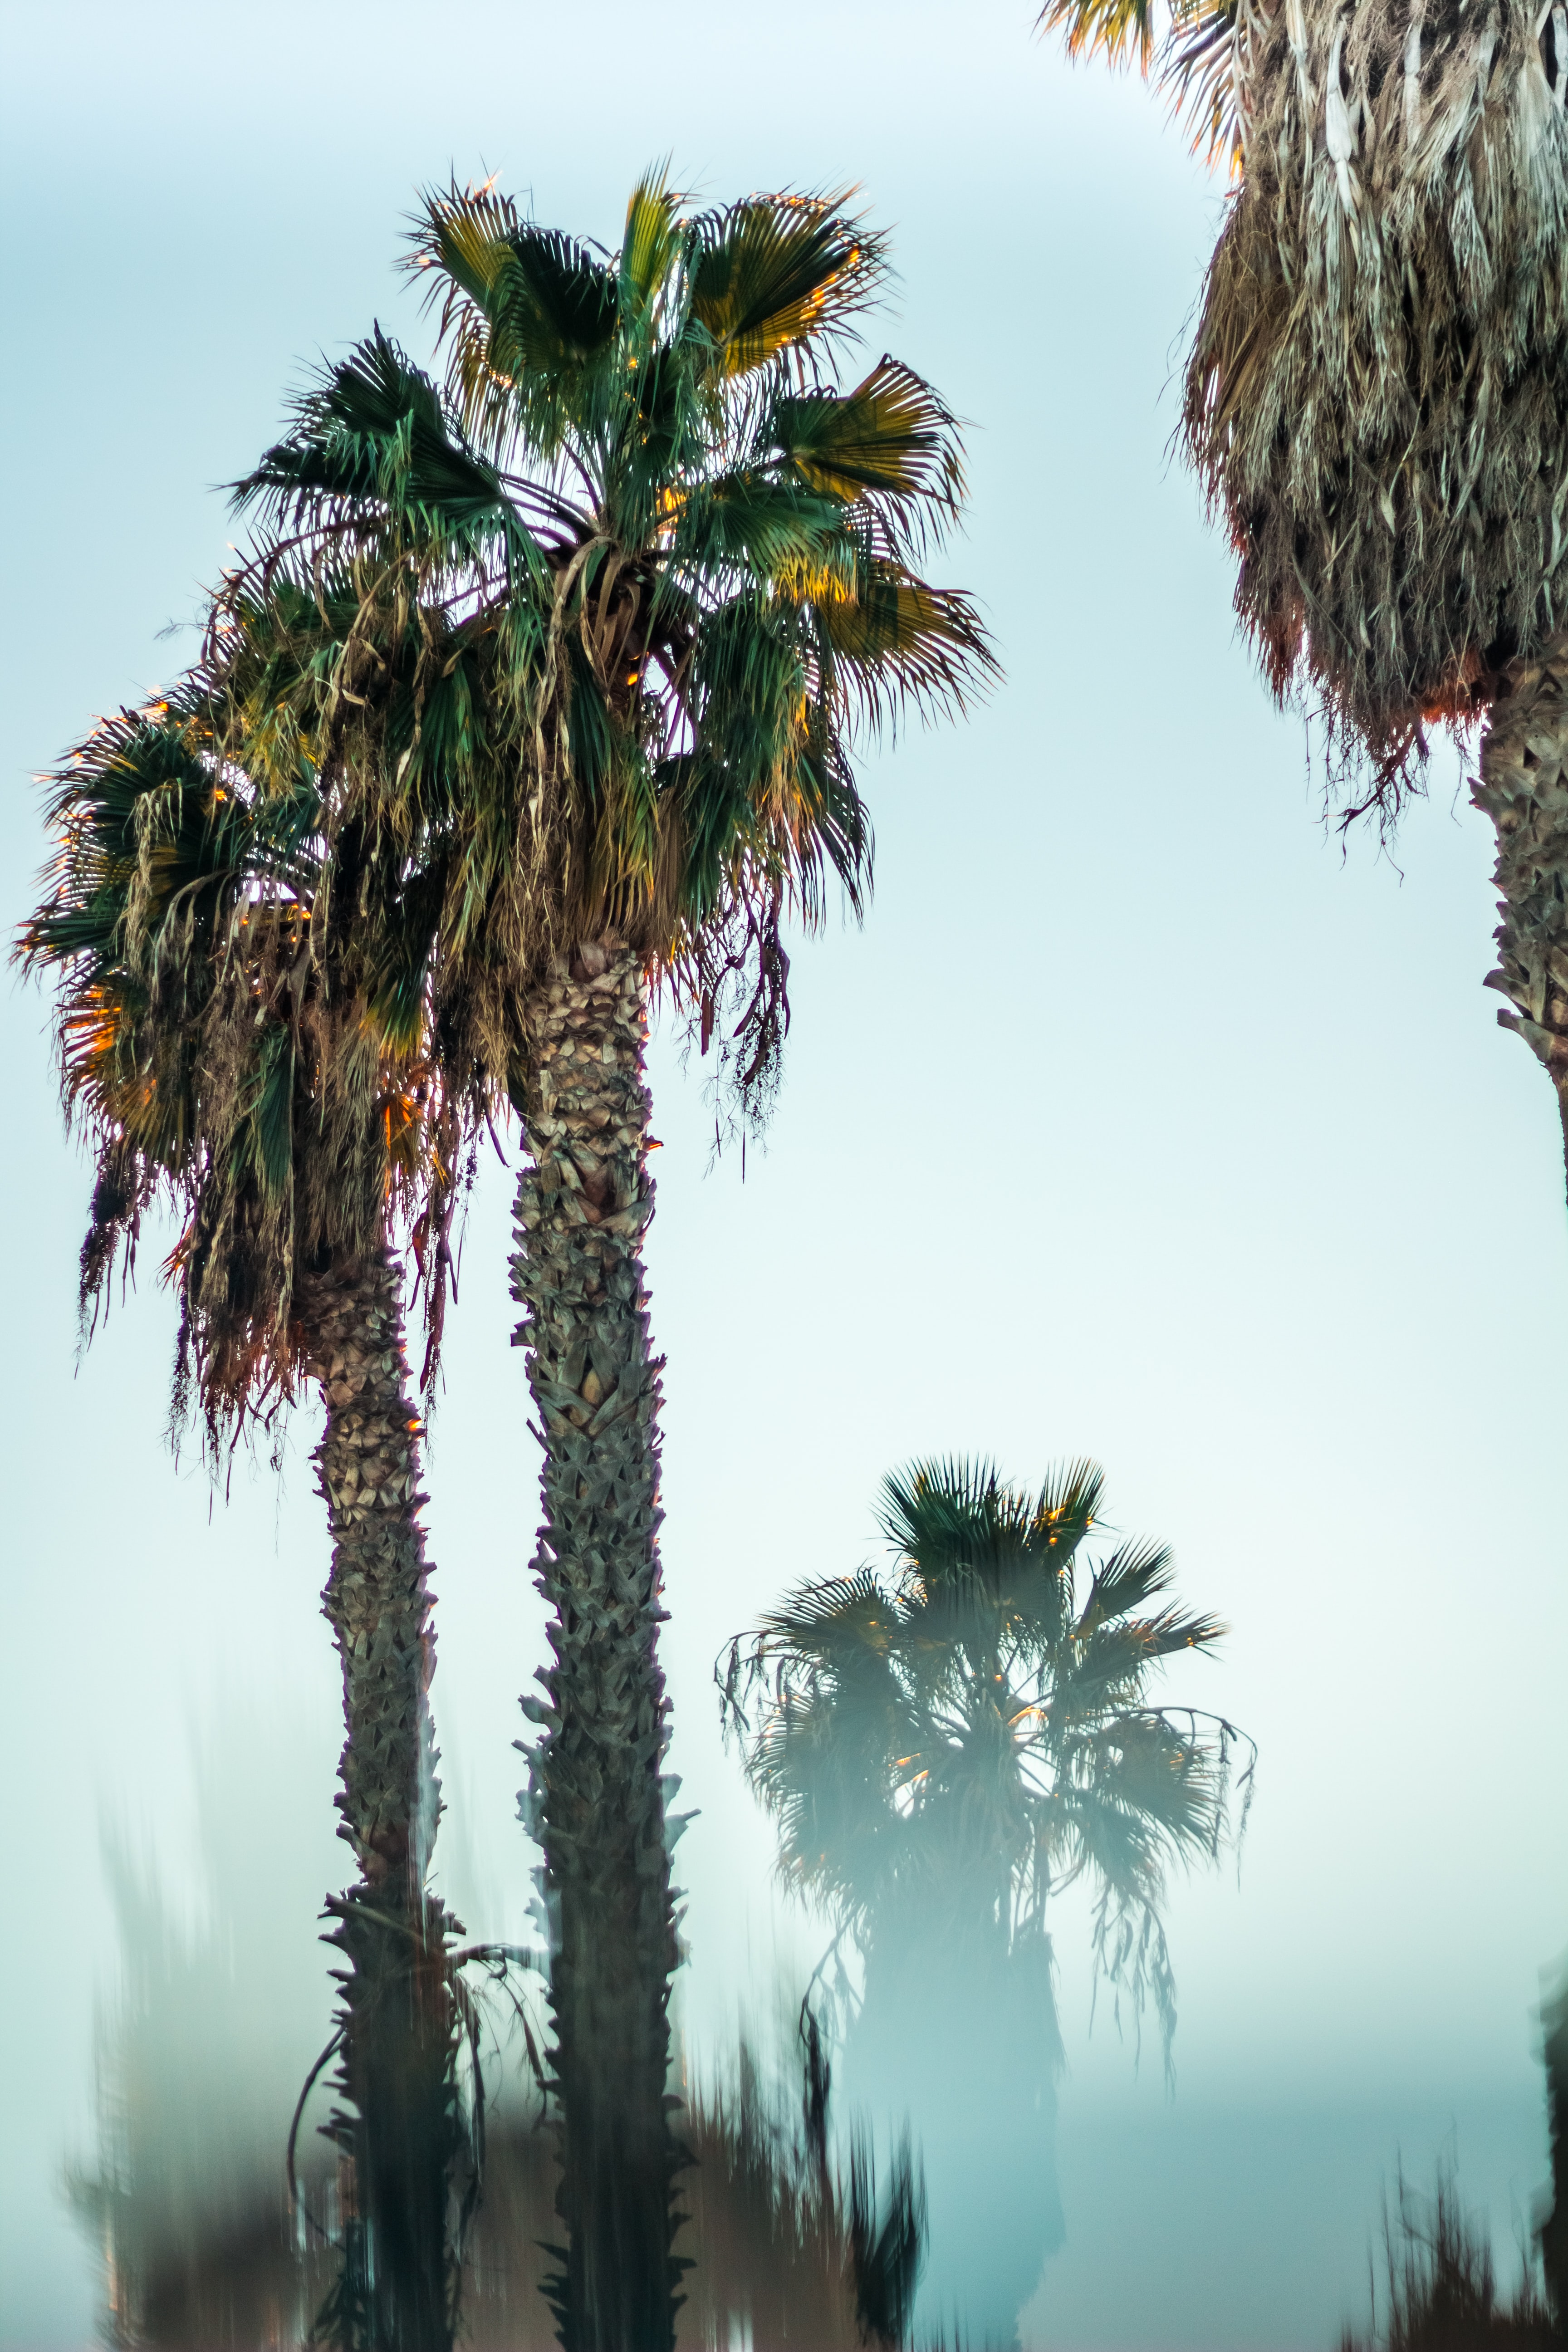 low angle photography of green palm trees under blue sky at daytime